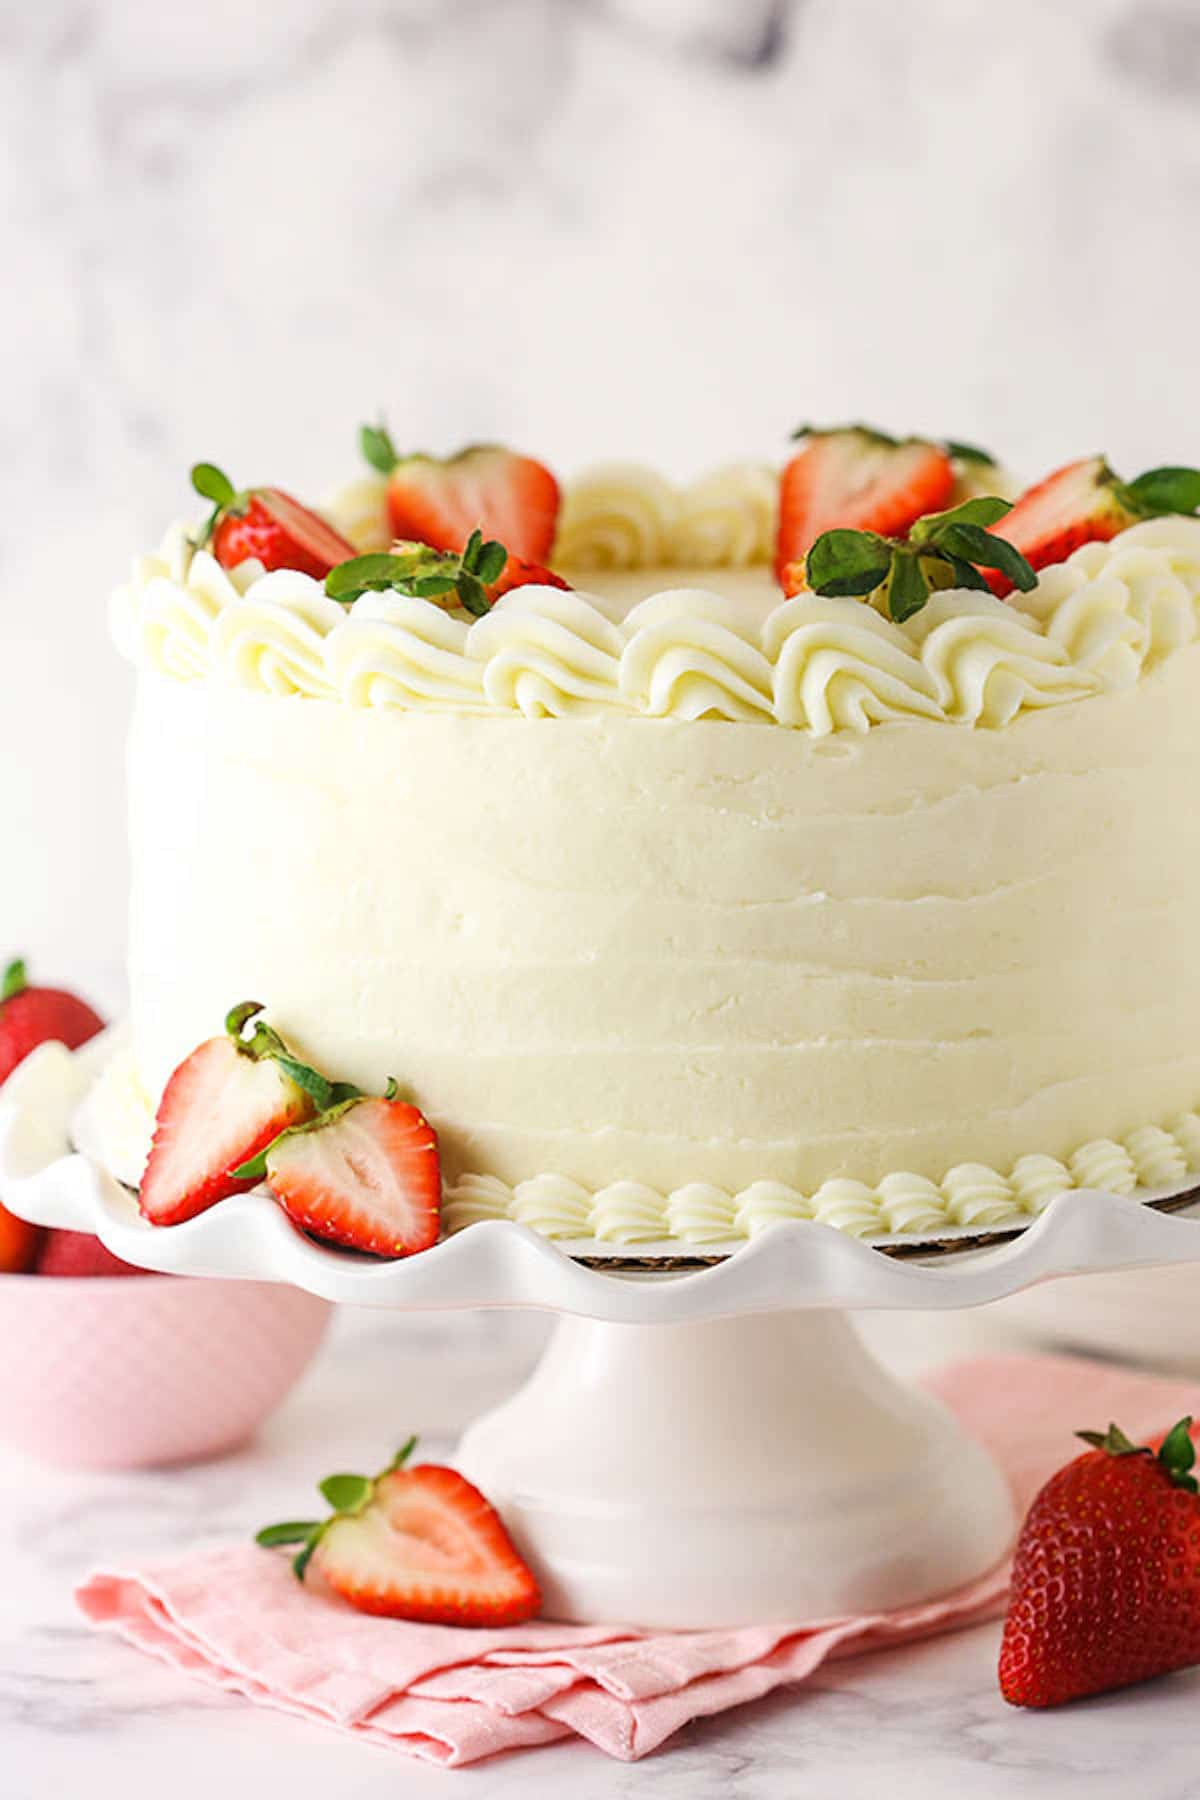 A Strawberry Cake with Cream Cheese Frosting on a White Cake Stand